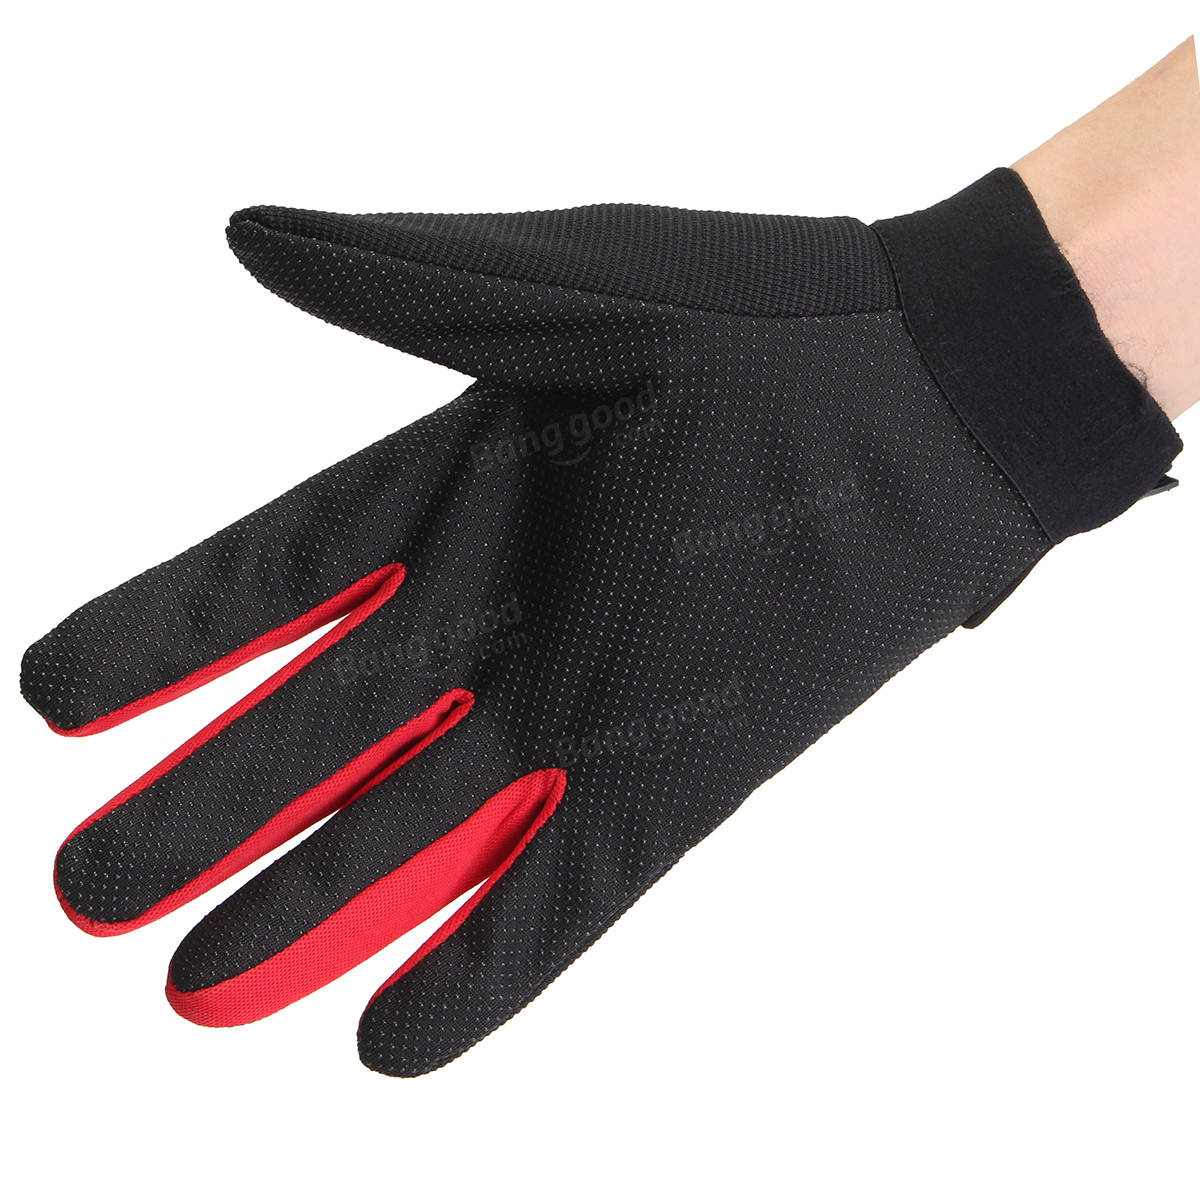 Motorcycle gloves with id pocket - Motorcycle Sport Full Finger Gloves Anti Slip Breathable Riding Racling Gloves